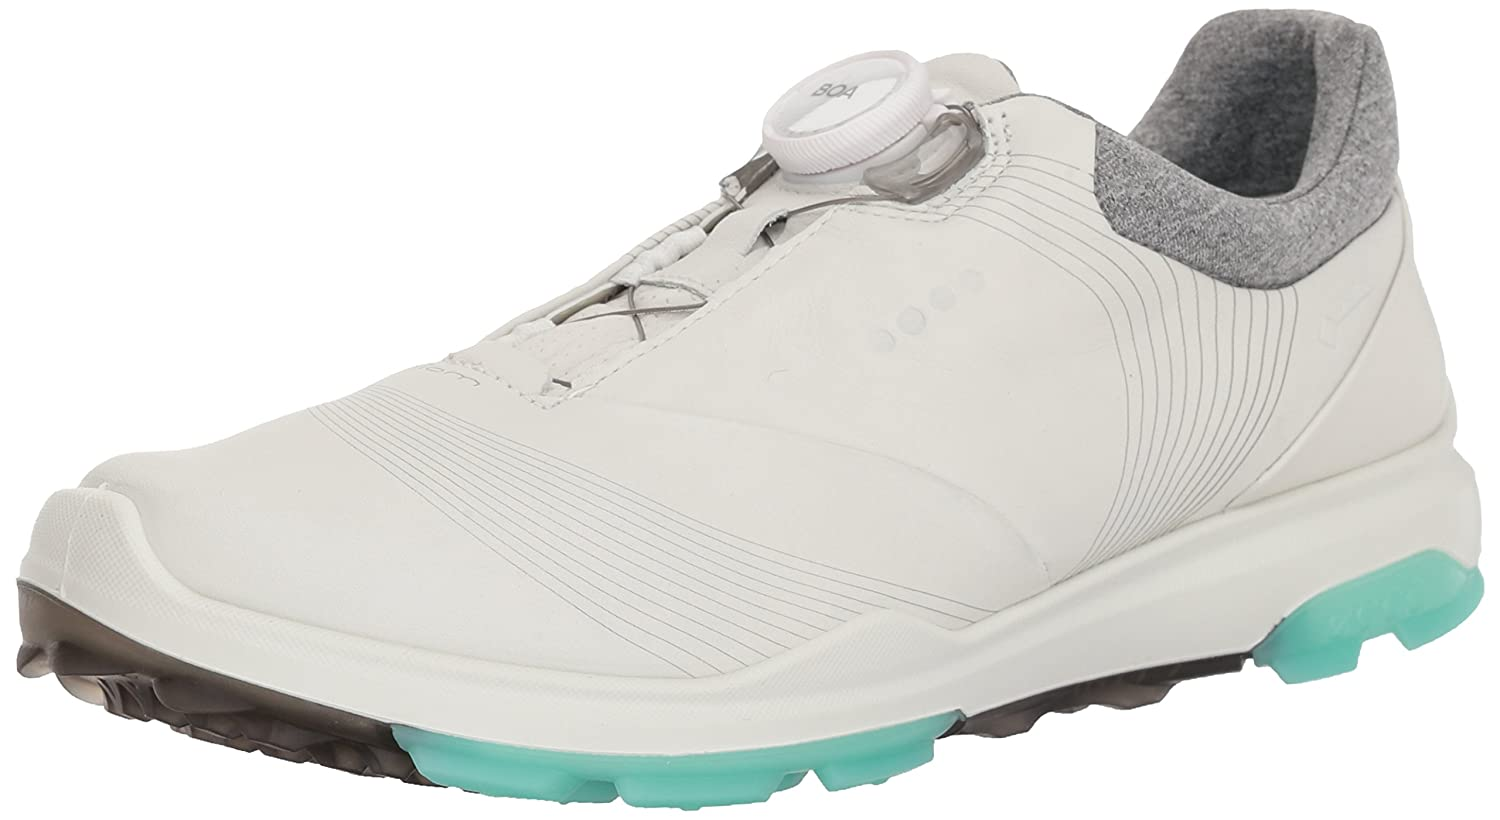 ECCO Women's Biom Hybrid 3 Boa Gore-Tex Golf Shoe B074H9T3K7 42 M EU (11-11.5 US)|White/Emerald